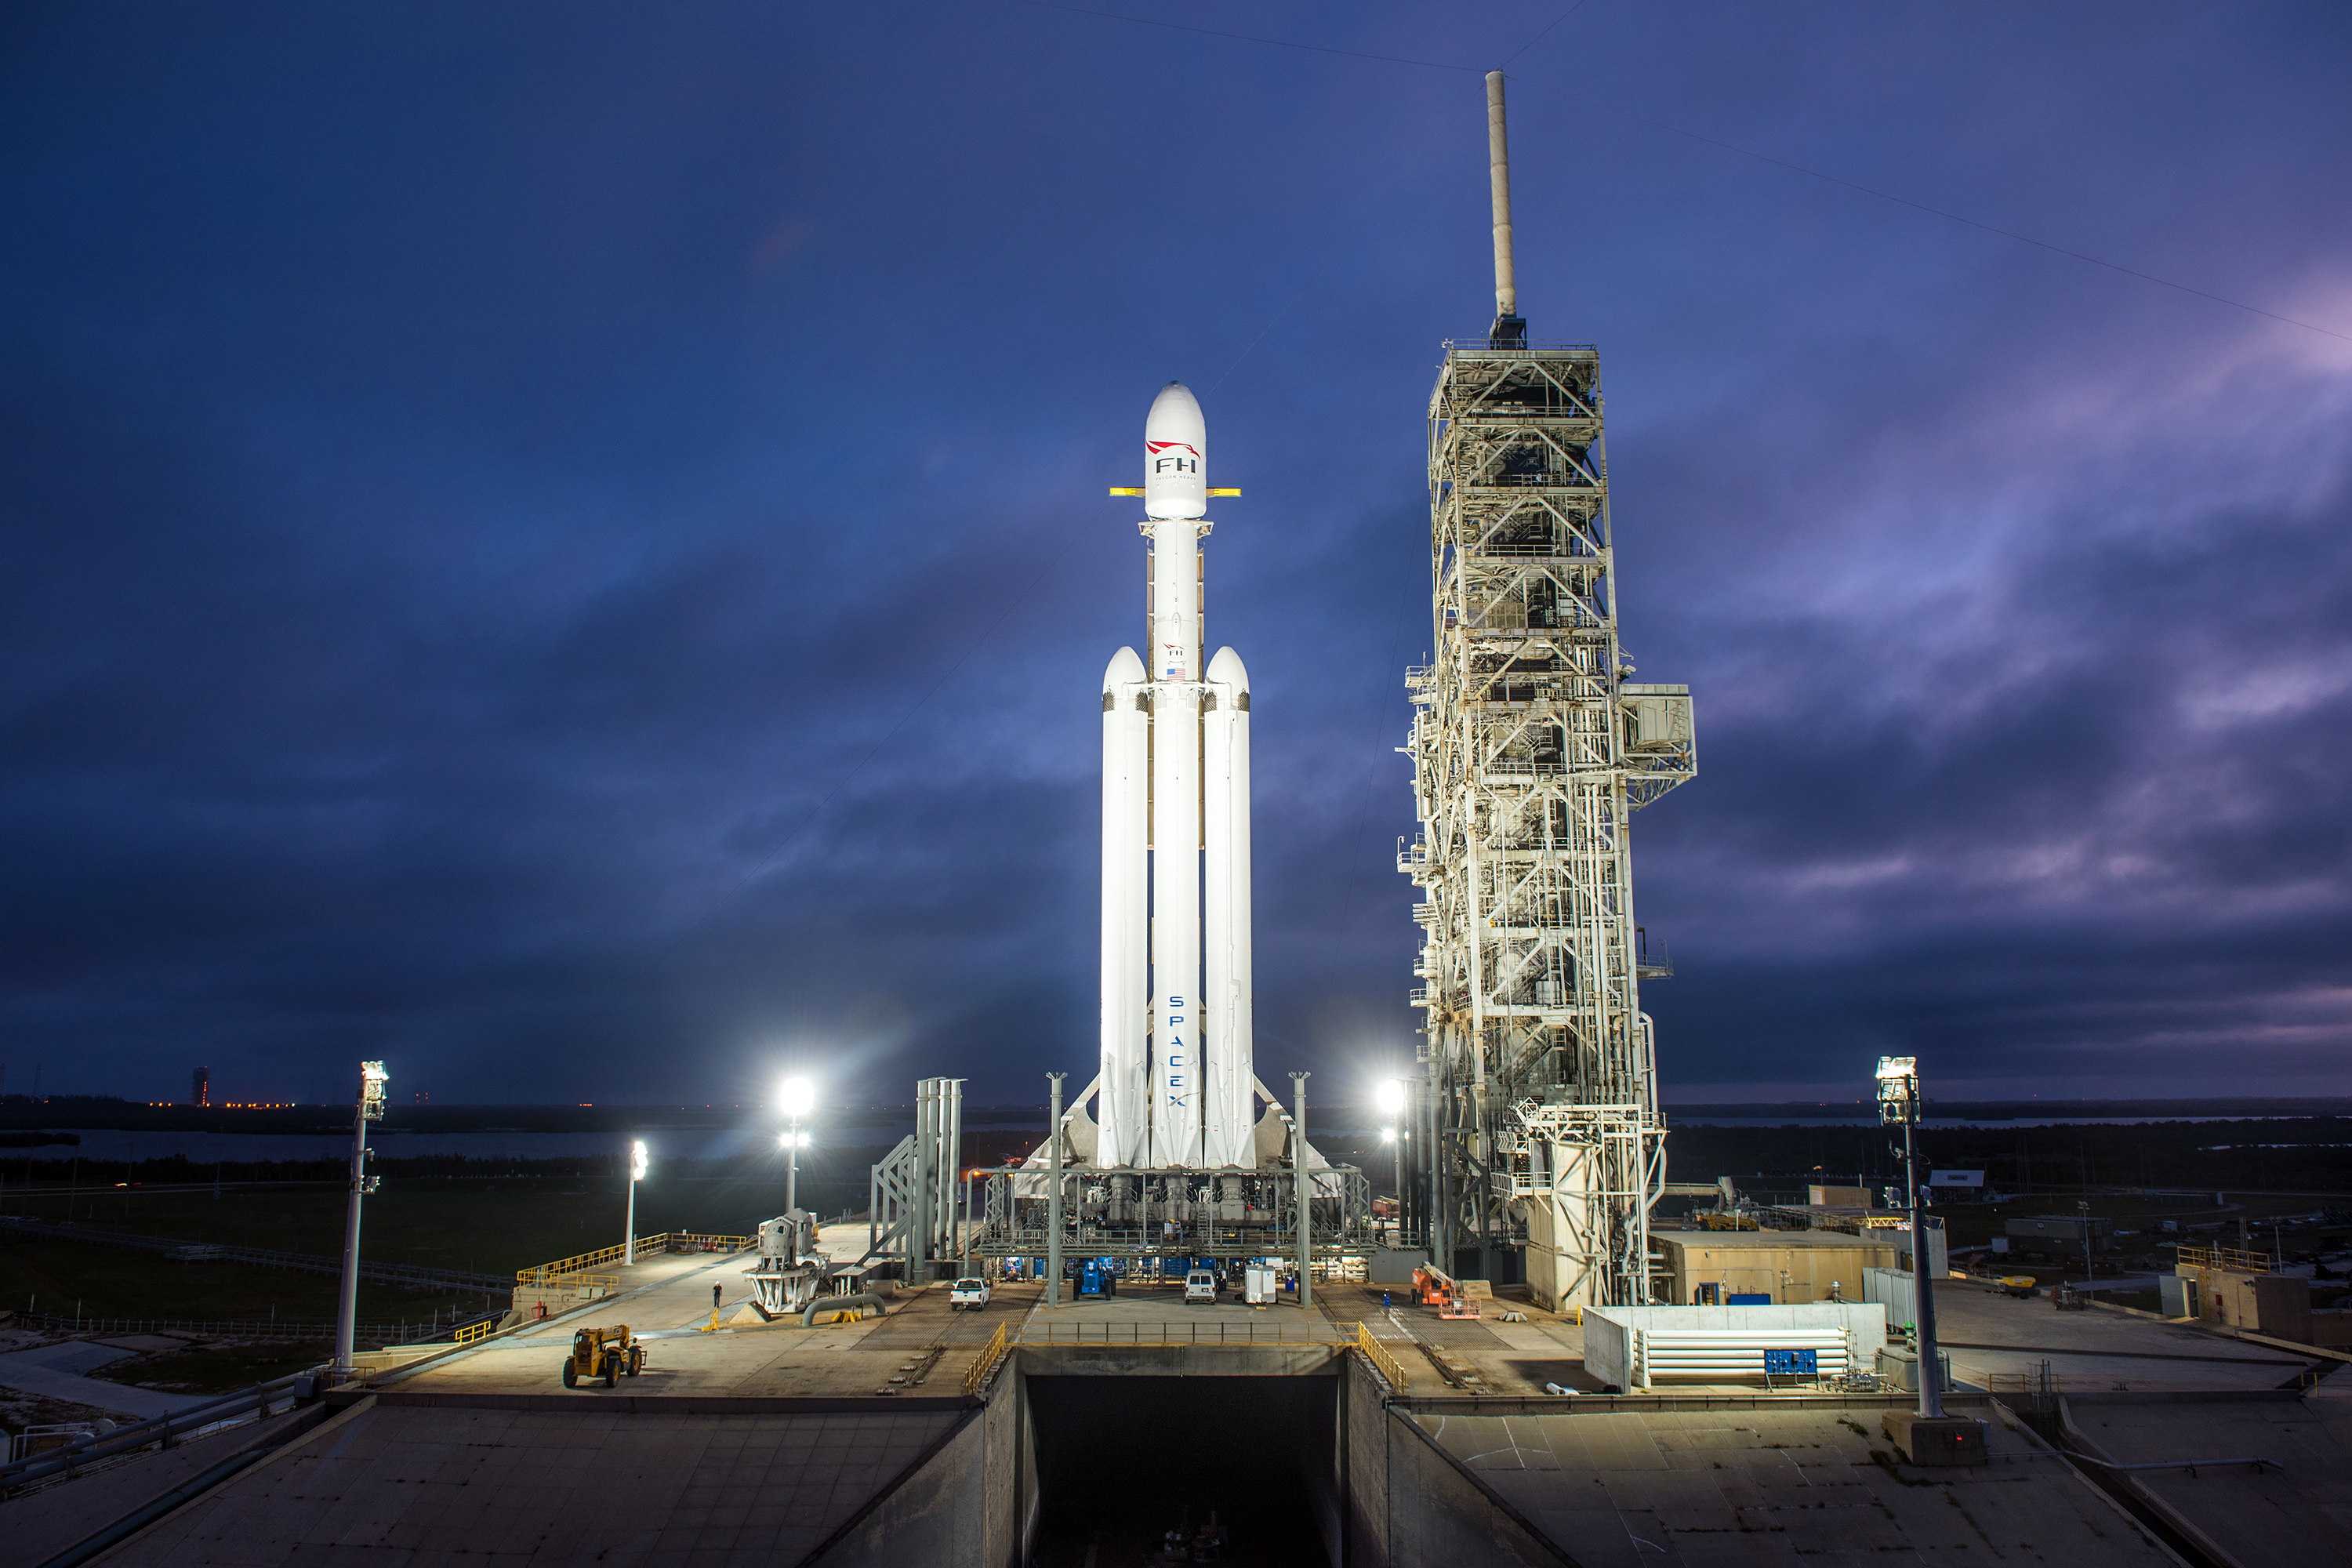 Big bird, big promises: The Falcon Heavy must live up to a lot of hype